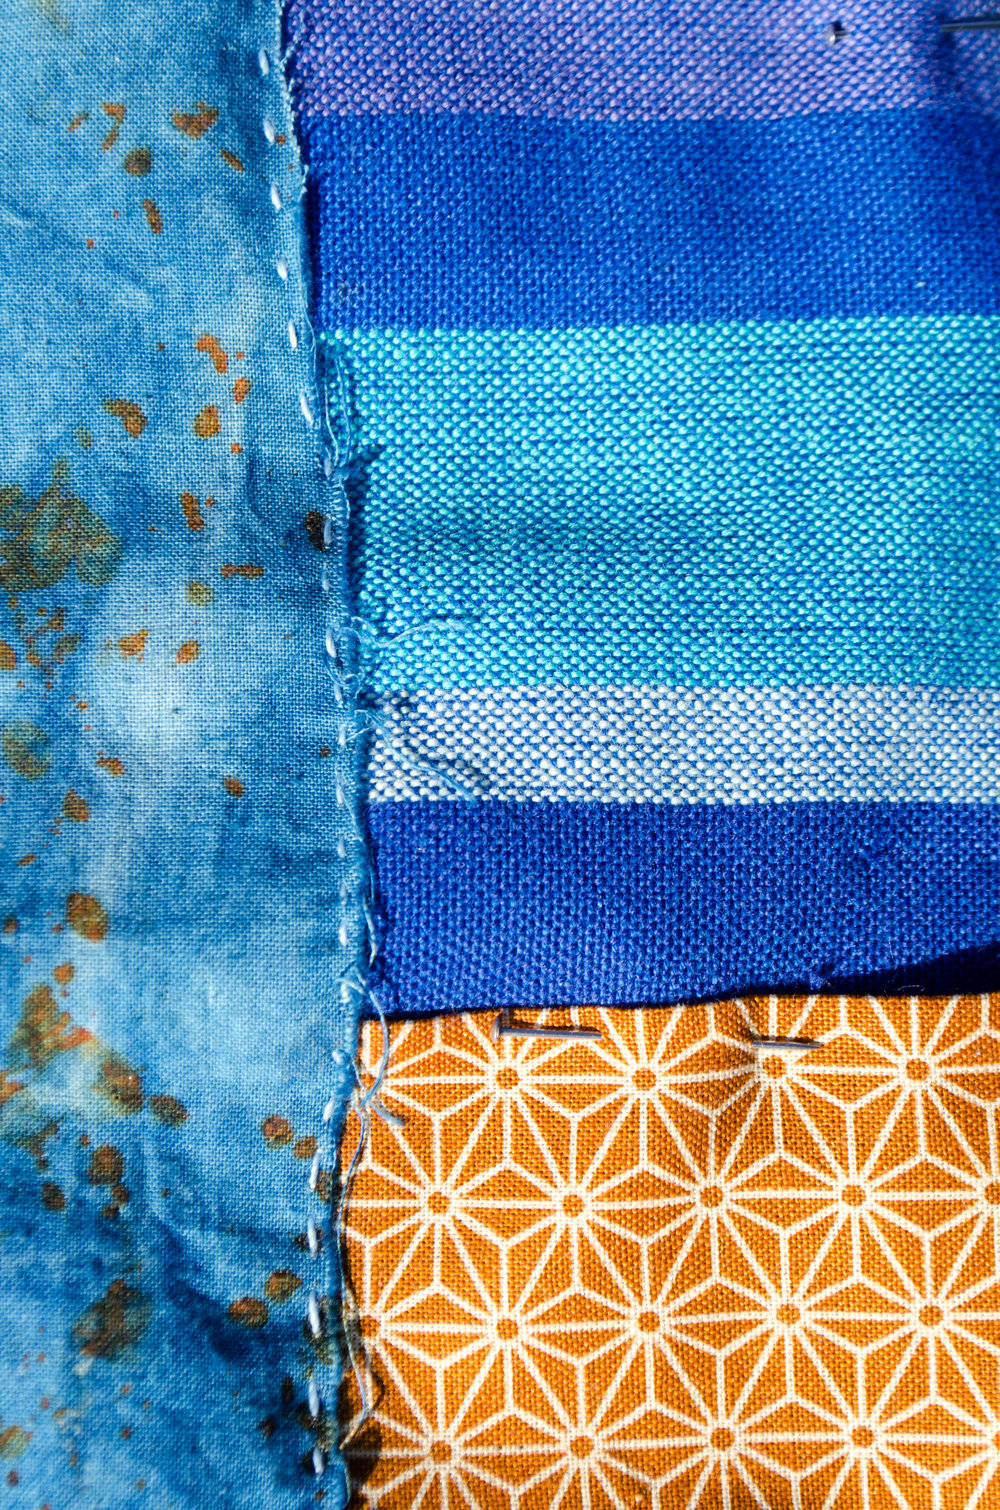 Rust-dyed cotton stitched to a Japanese print